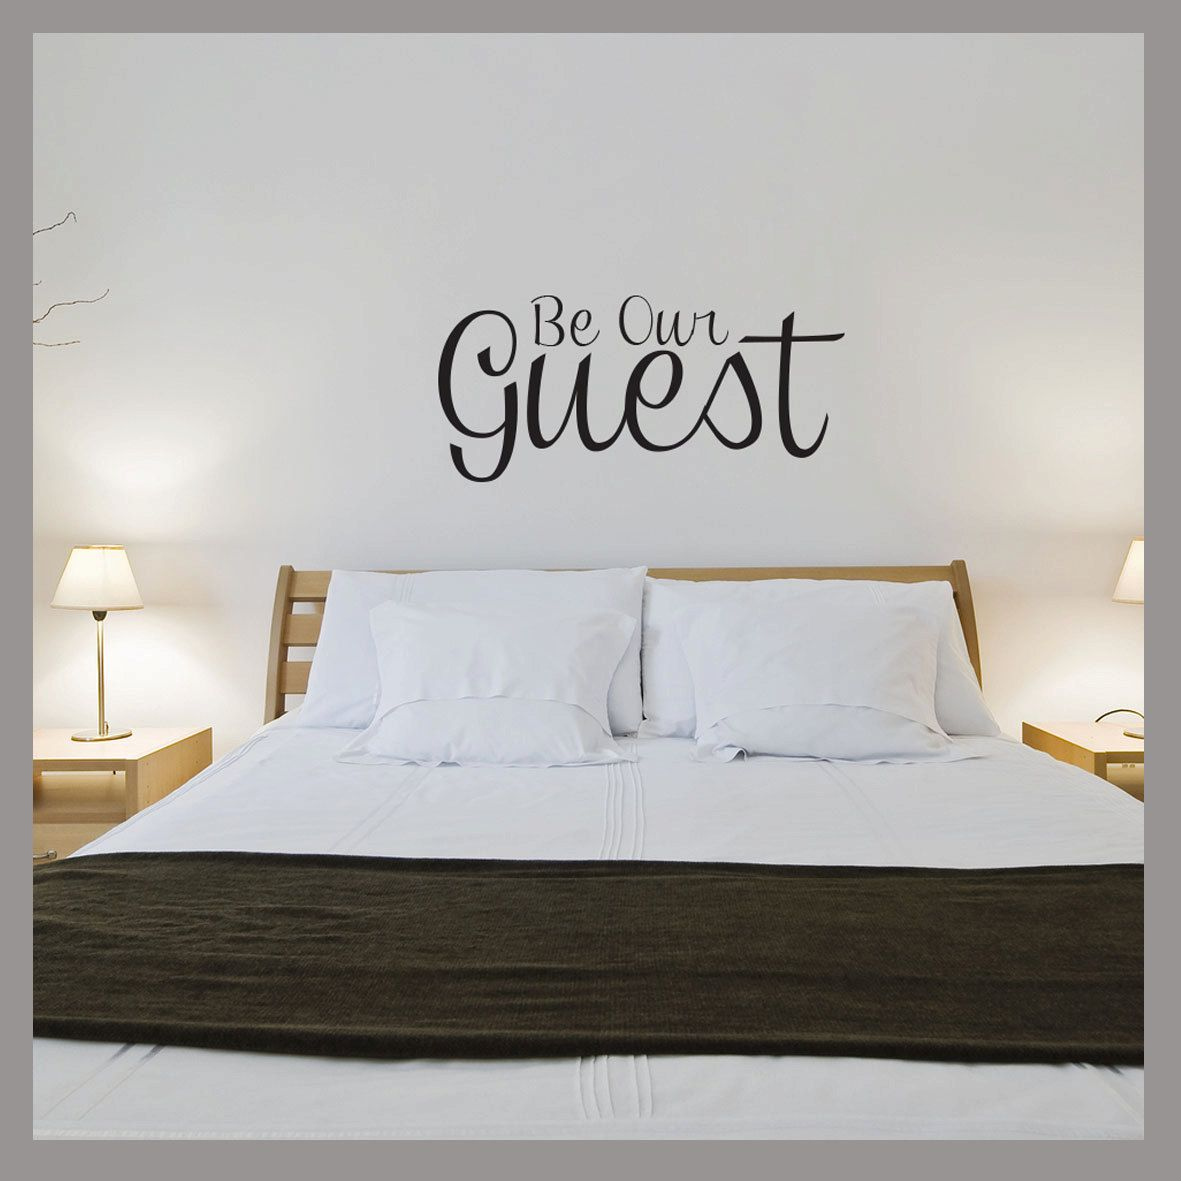 Be Our Guest Removable Wall Decal Sticker 19 95 Via Etsy Wall Stickers Bedroom Bedroom Wall Home